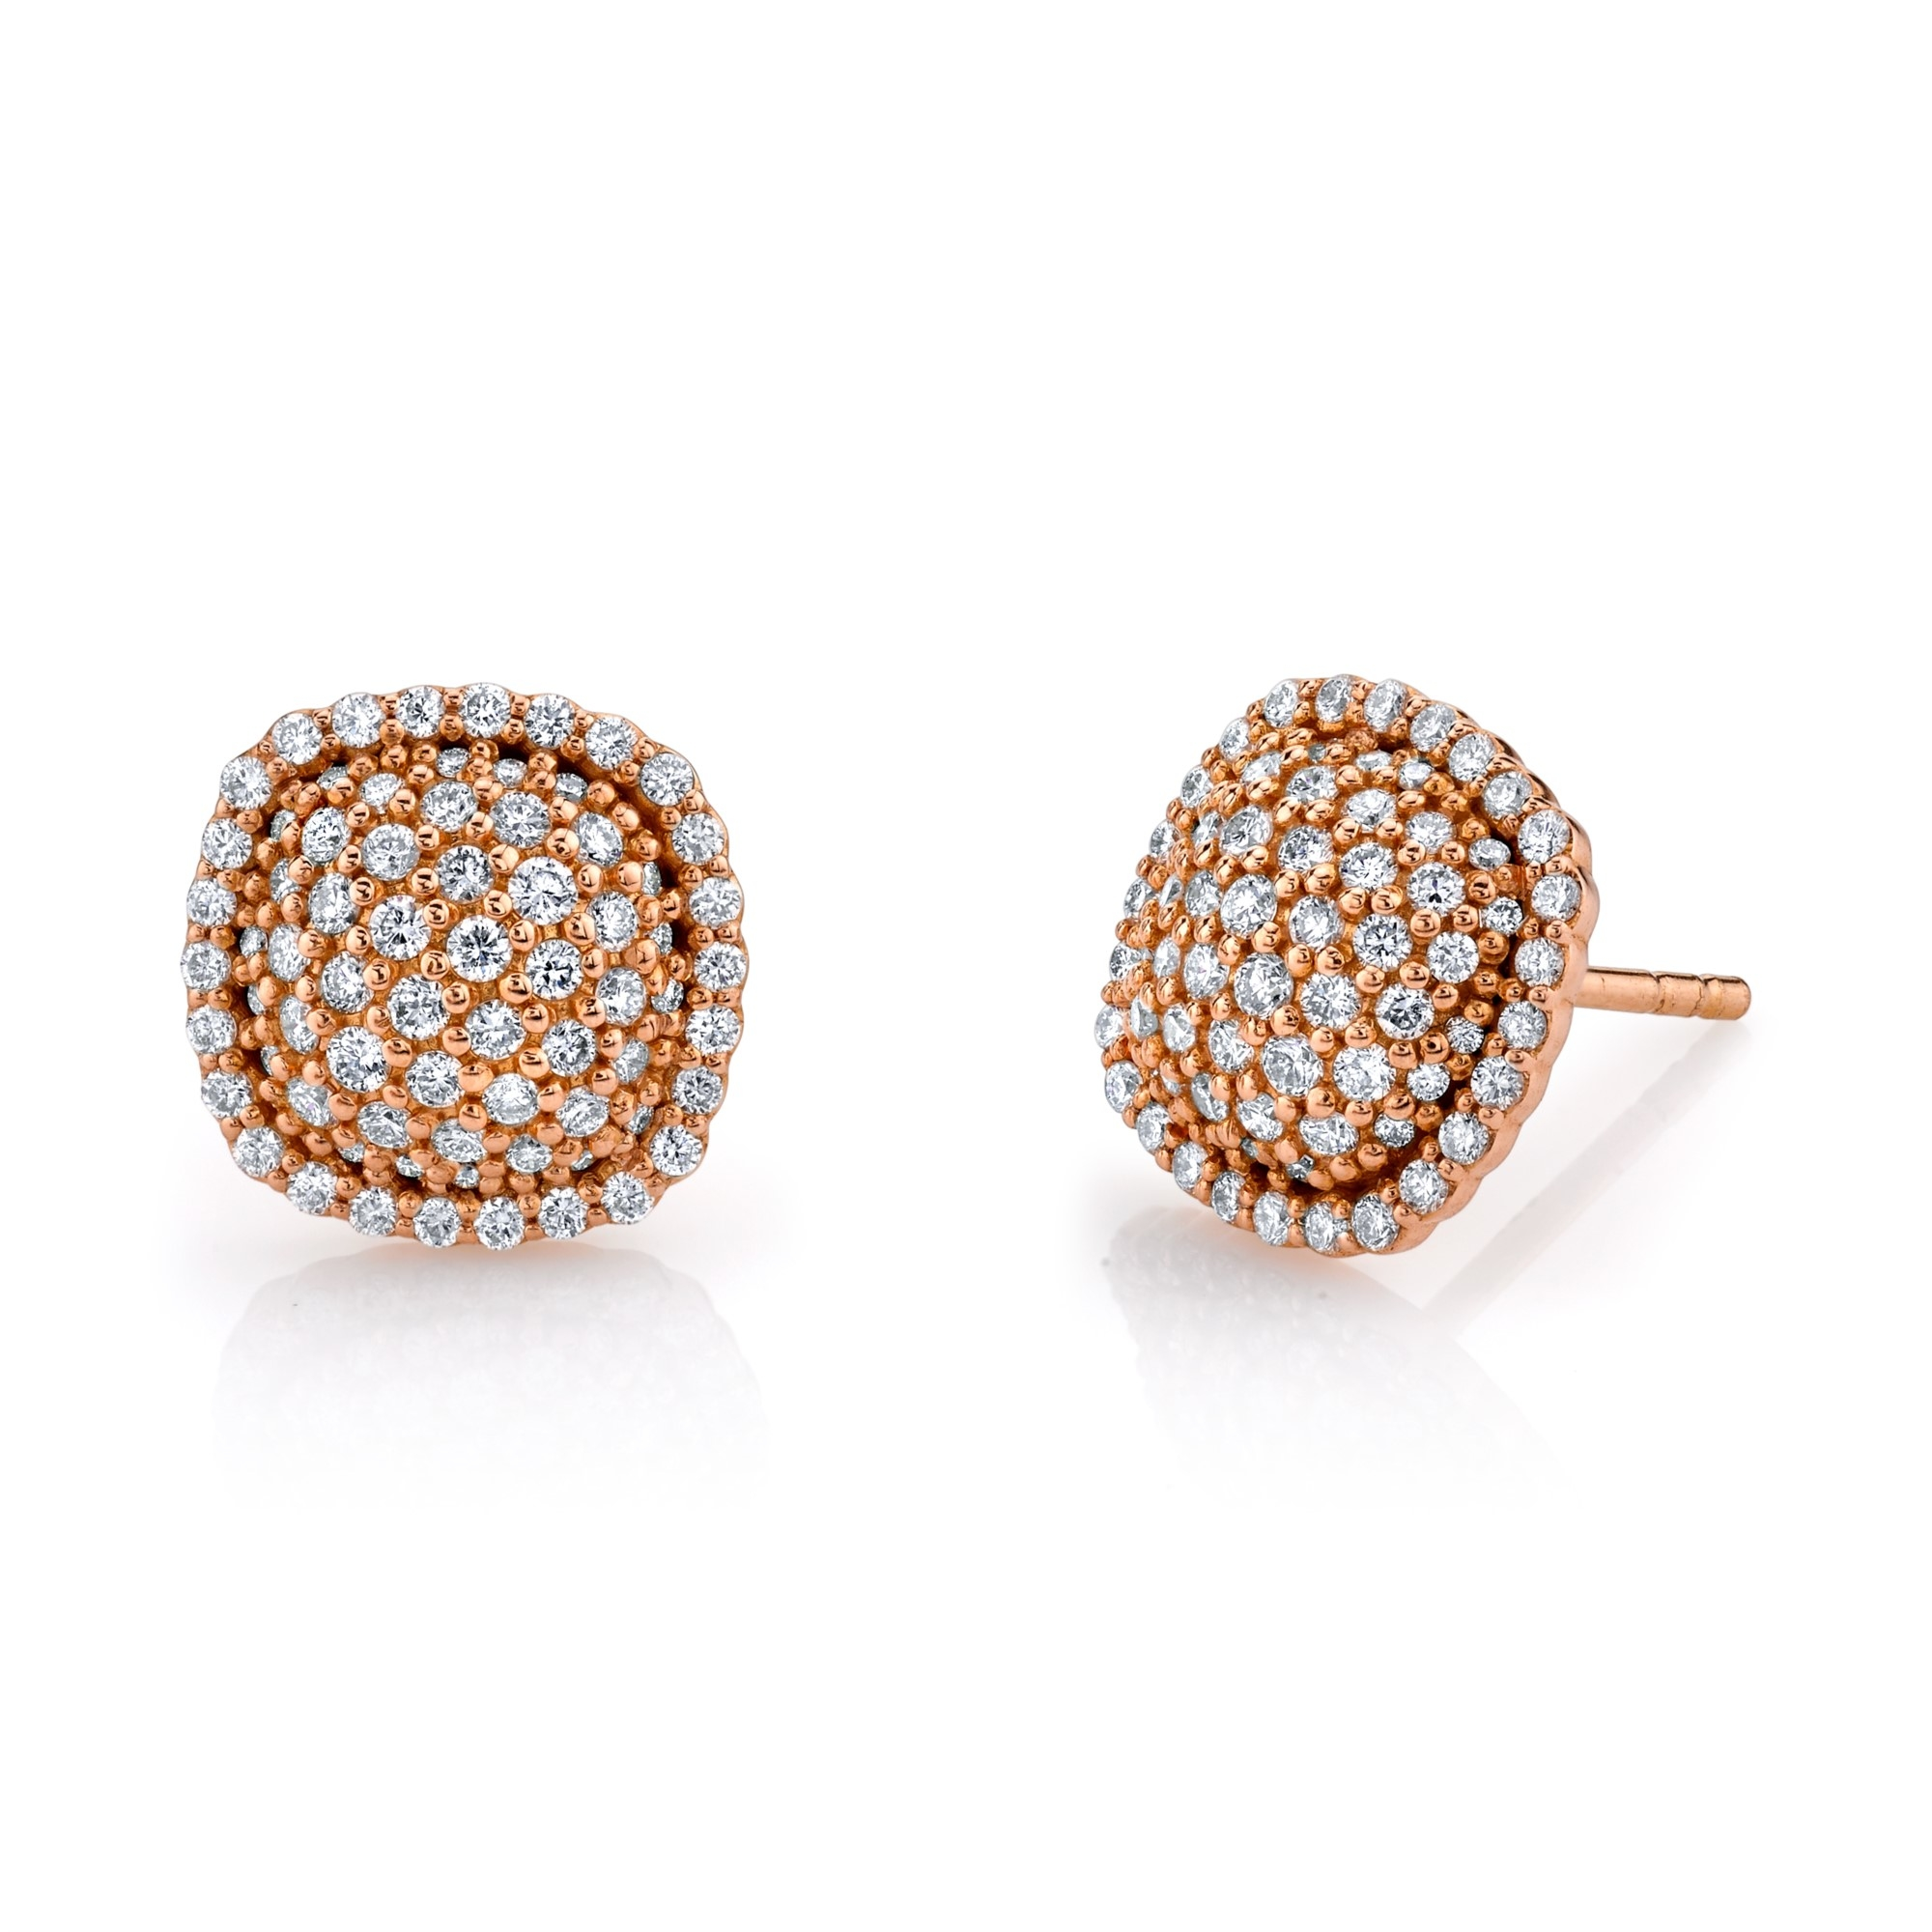 Sloane Street 18K Rose Gold .81cts  Diamonds Gold Earrings with Stones E009-WD-R